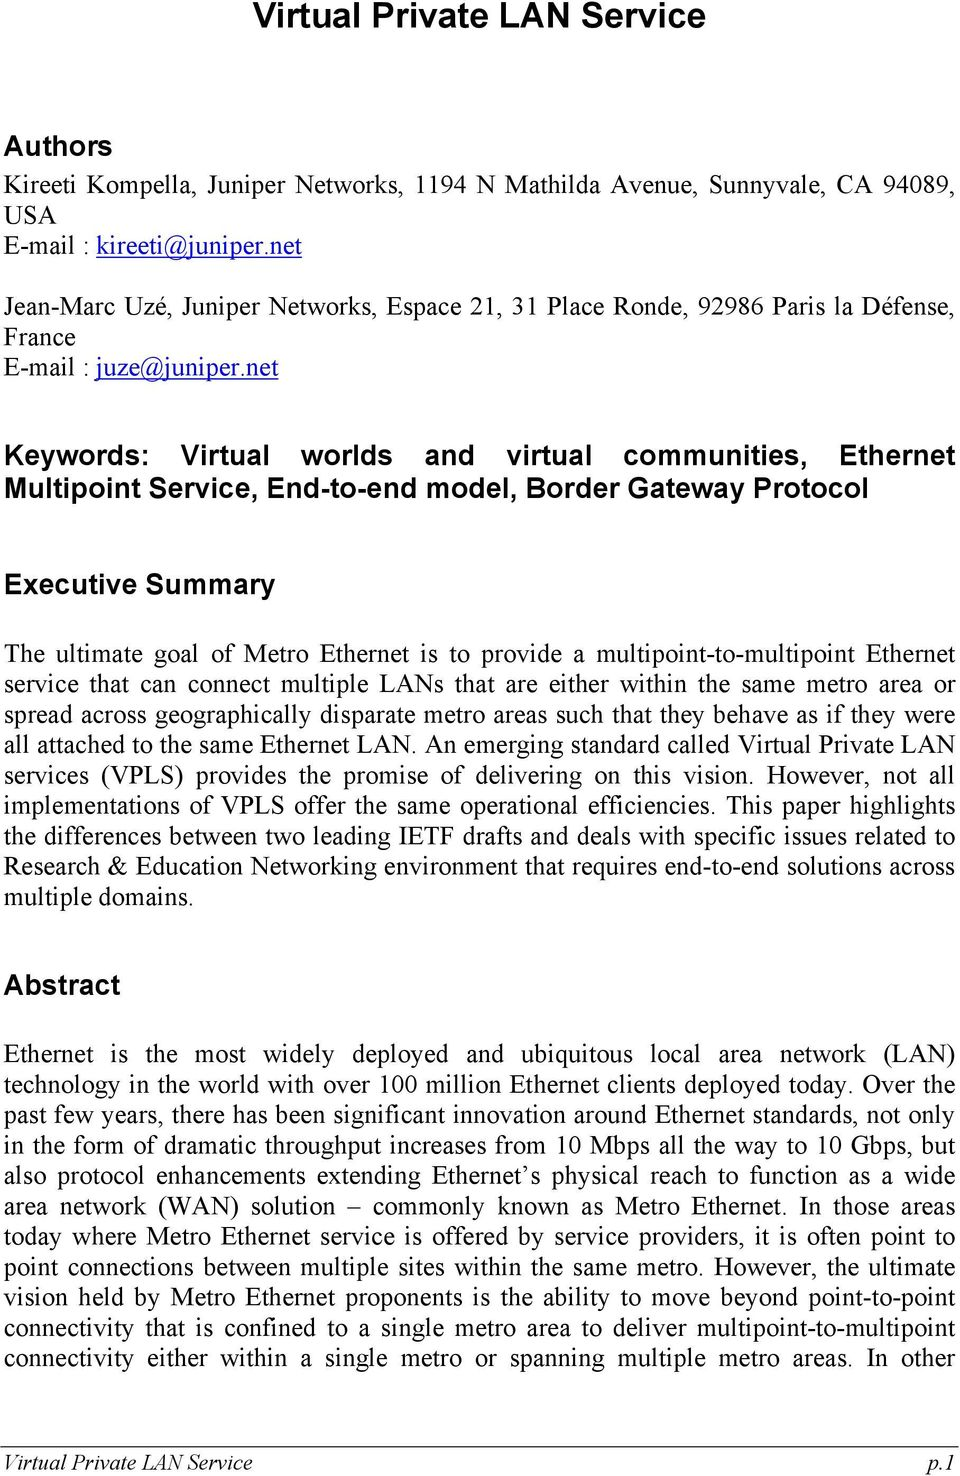 net Keywords: Virtual worlds and virtual communities, Ethernet Multipoint Service, End-to-end model, Border Gateway Protocol Executive Summary The ultimate goal of Metro Ethernet is to provide a